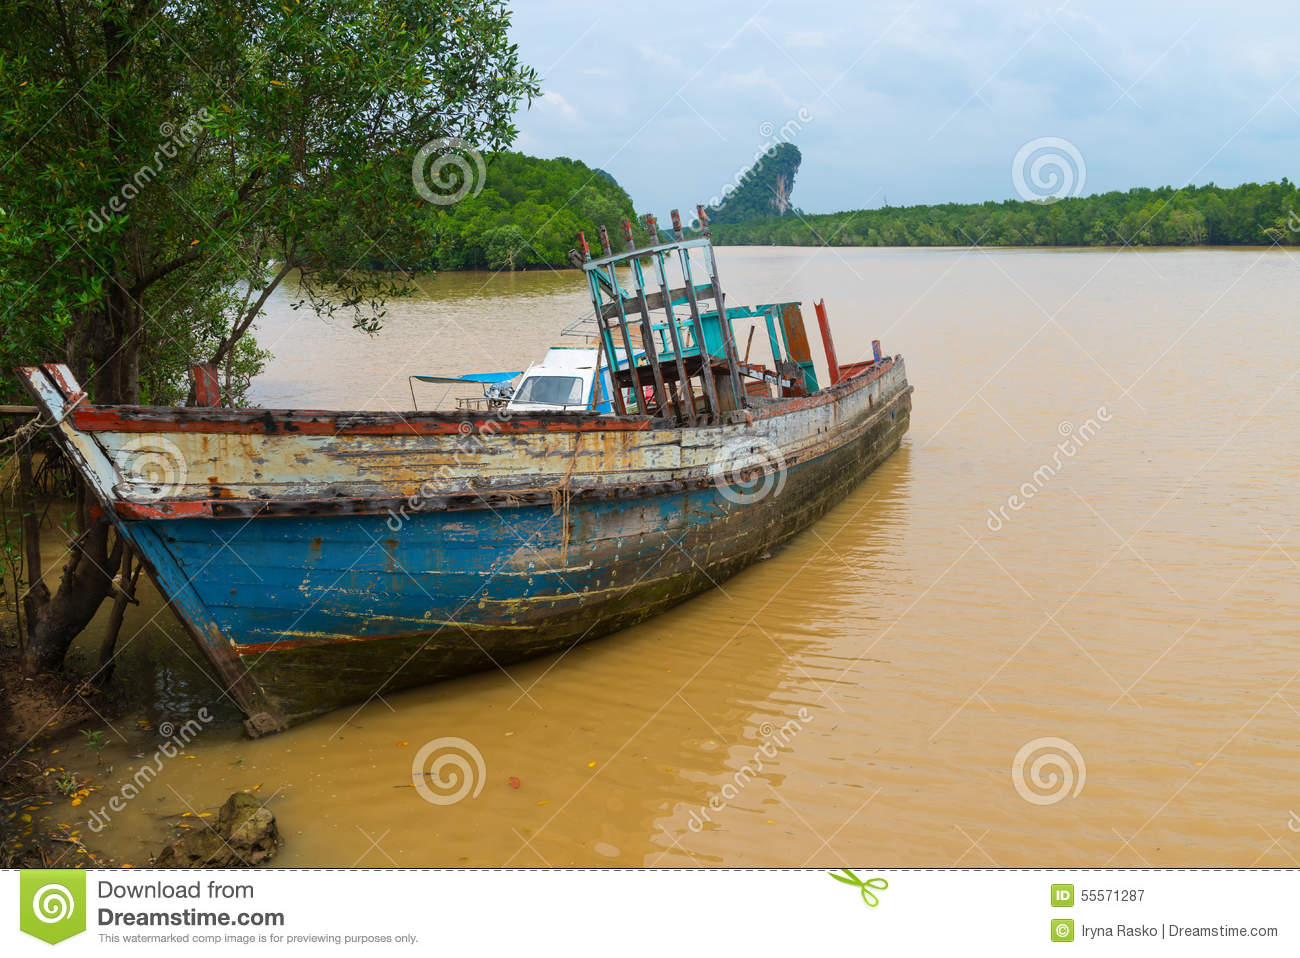 Old Wooden Boat, Abandoned And Deteriorating On A Muddy River Stock Photo - Image: 55571287